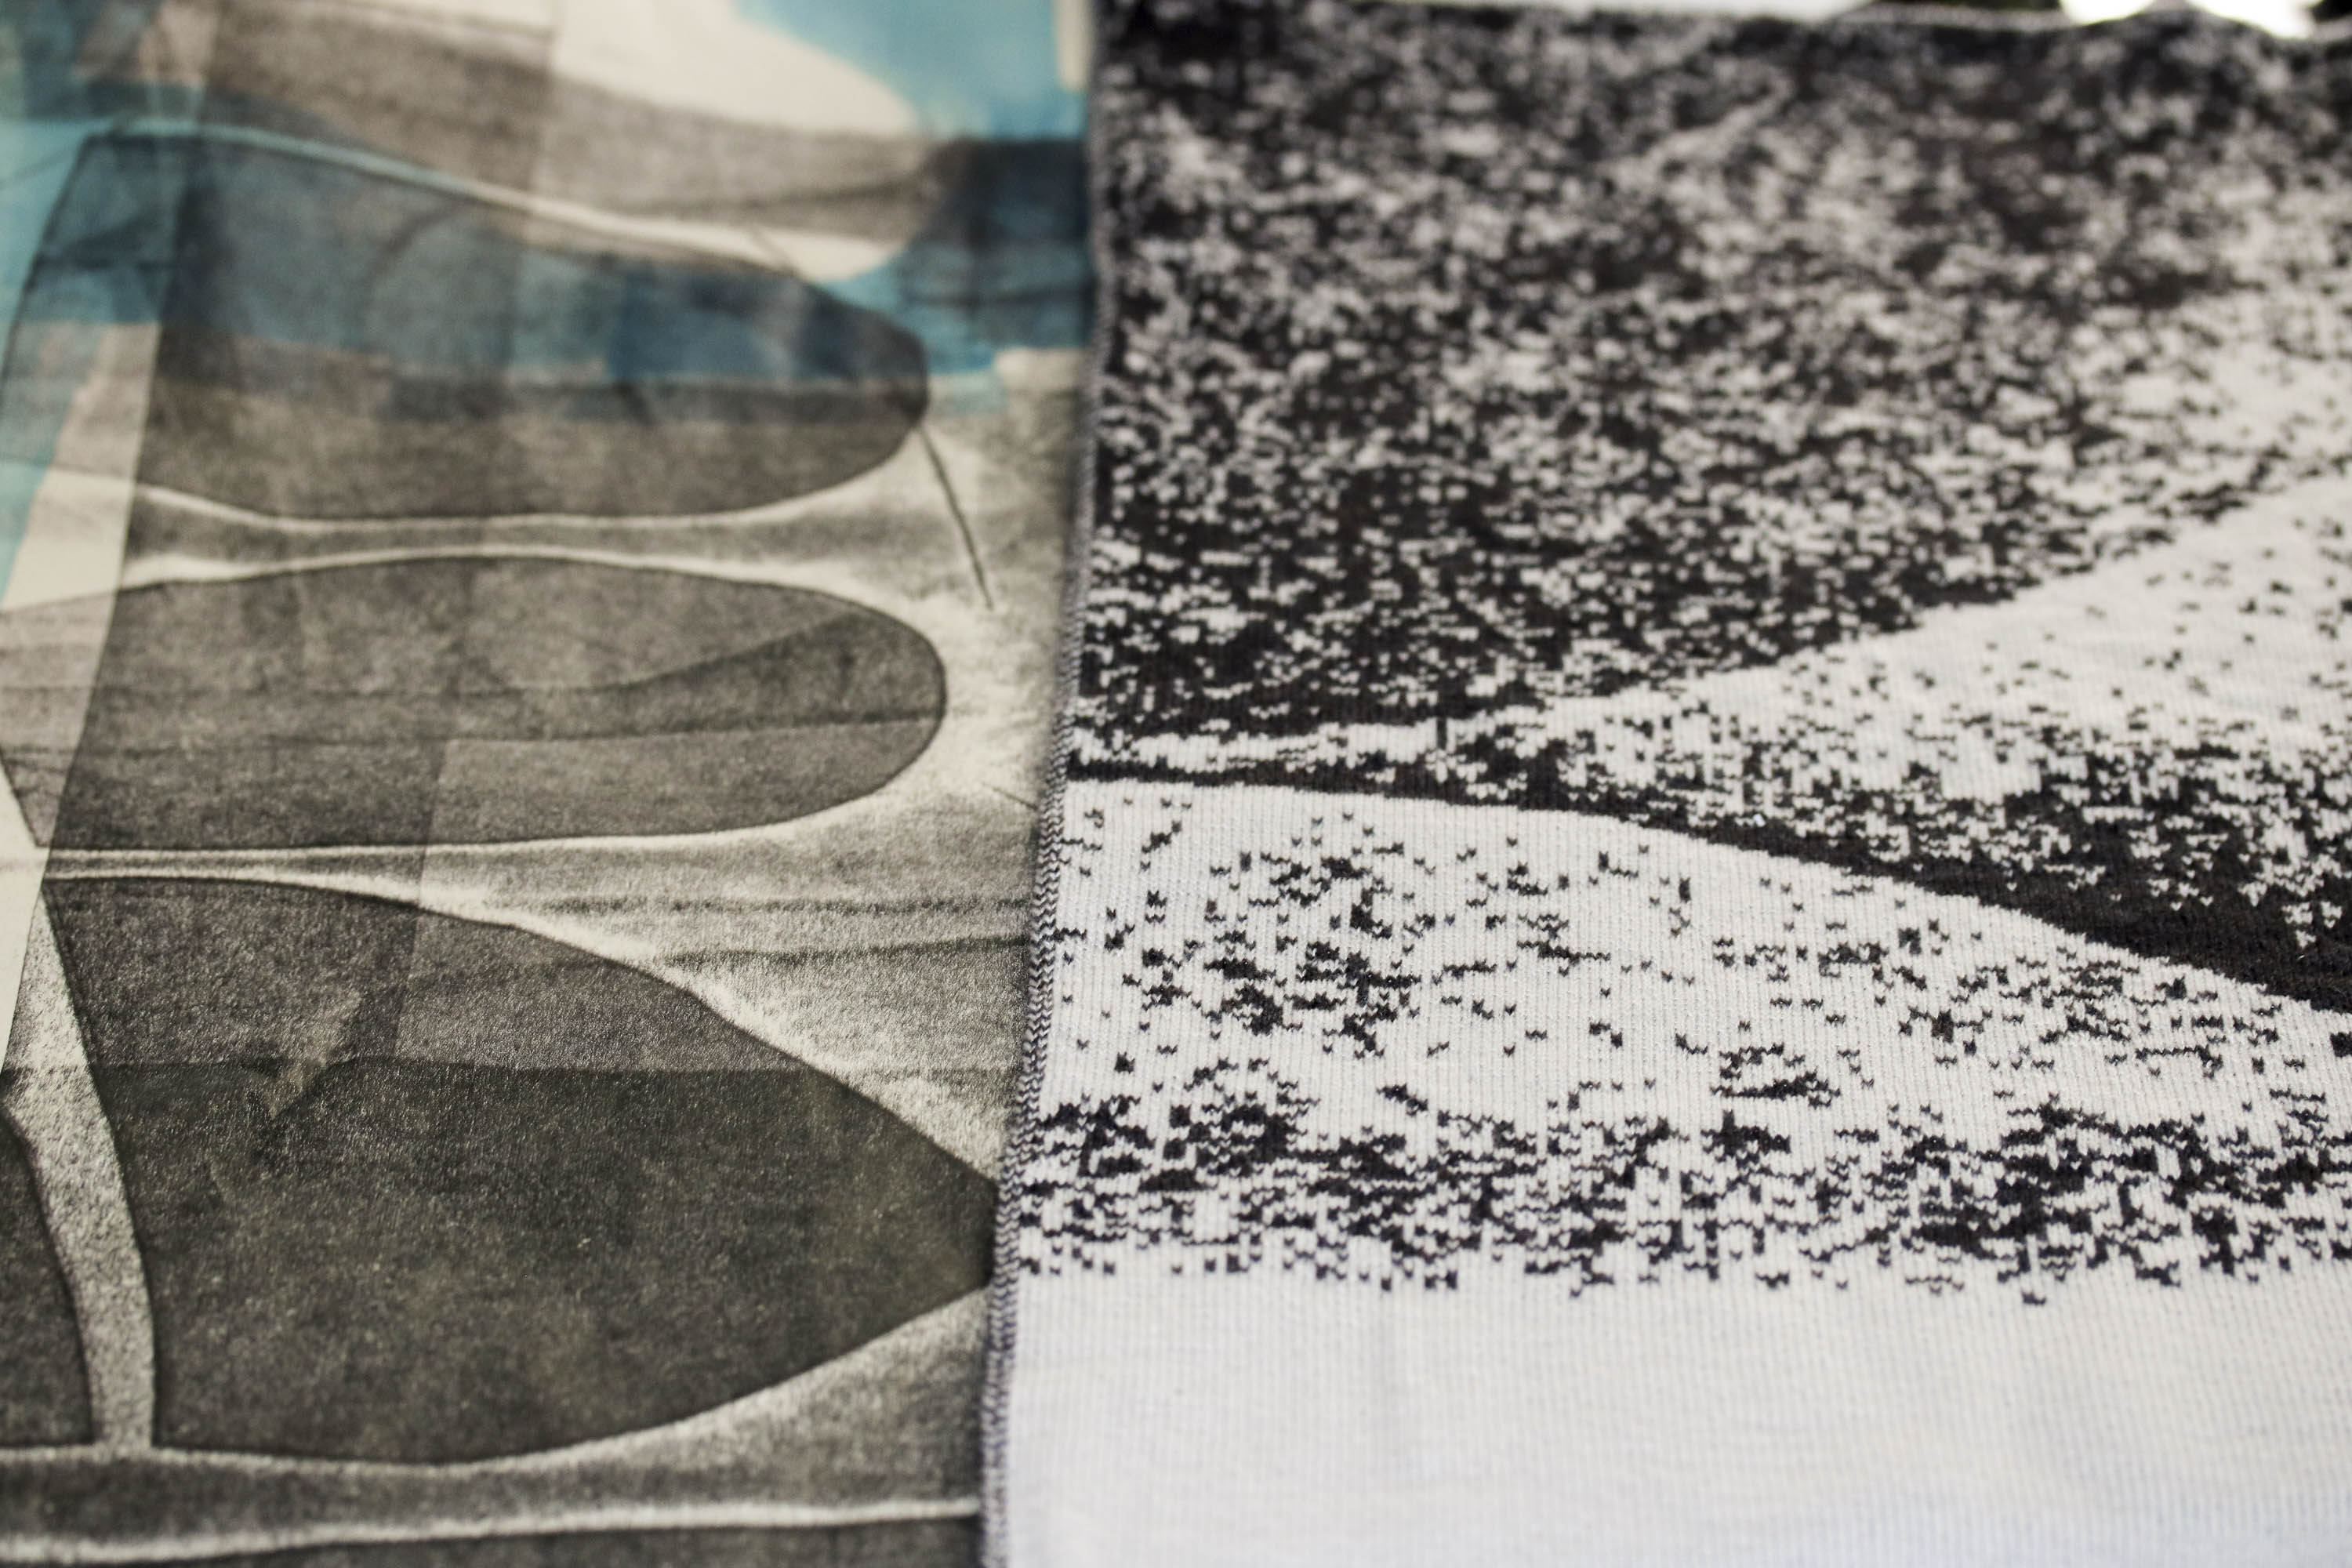 Abstract monoprint with abstract textile swatch of the same design - wearable art from Scotland, designed by Nielanell